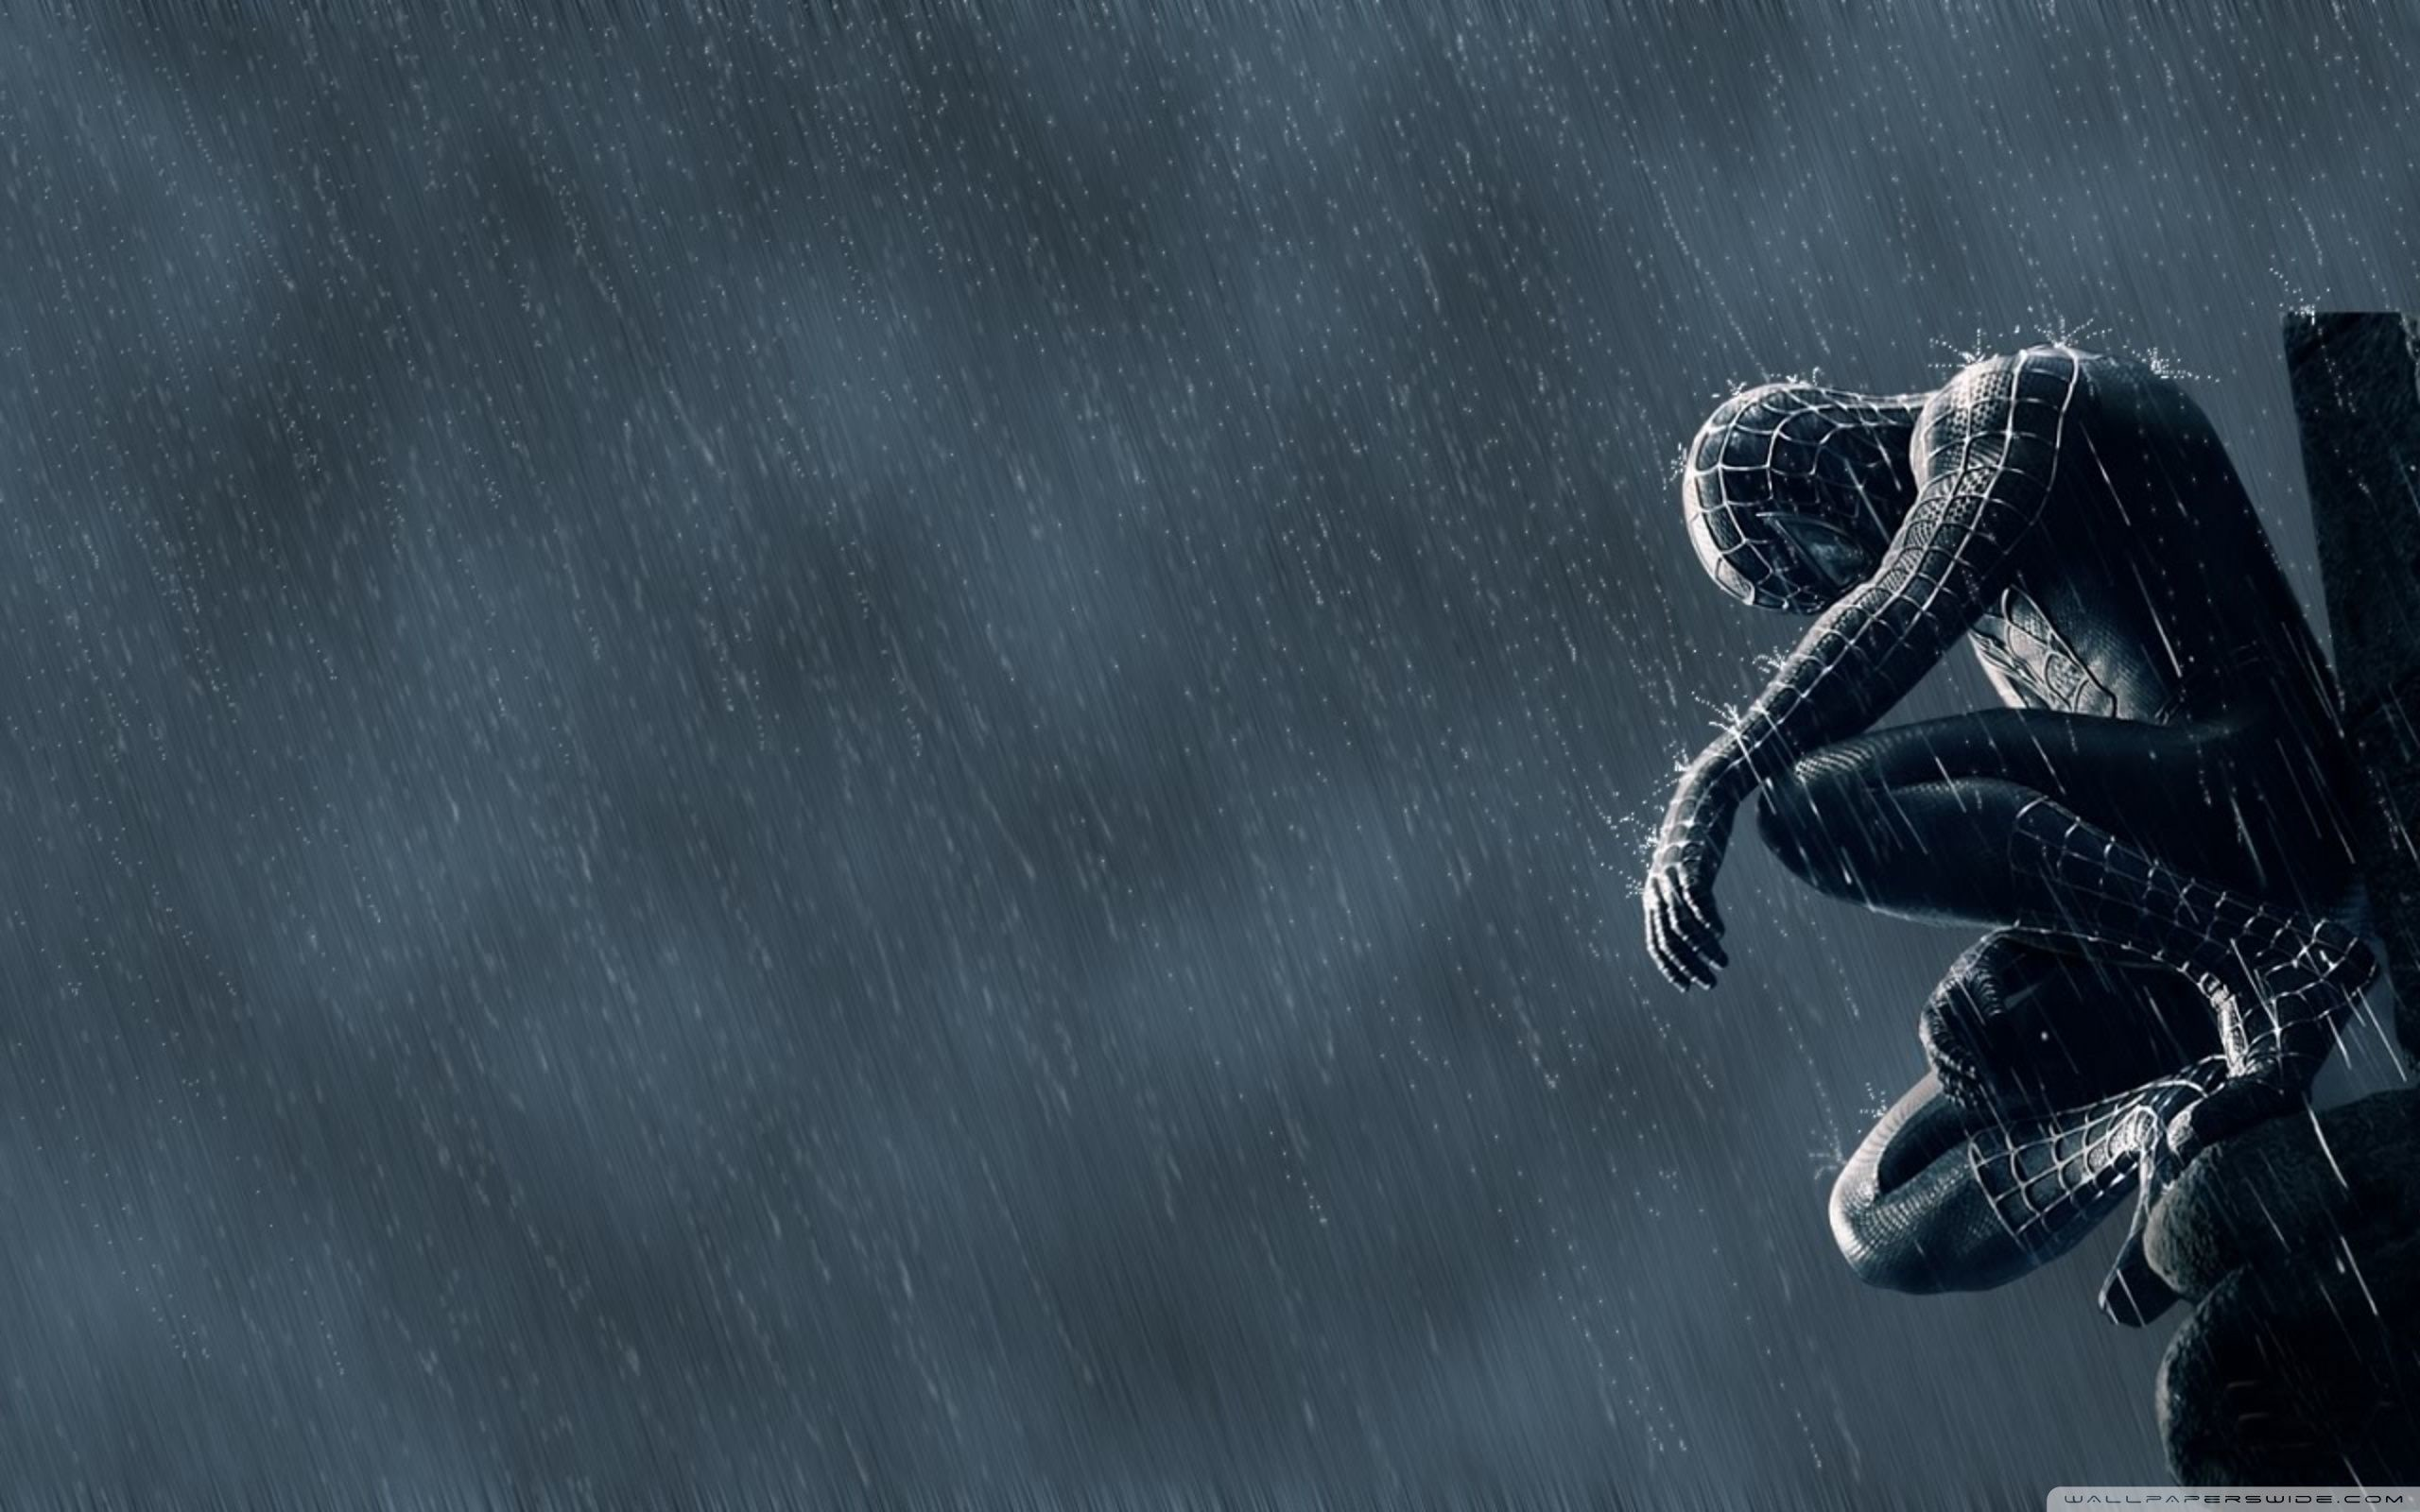 Collection of Amazing Spiderman Hd Wallpapers on HDWallpapers Spiderman  Pics Wallpapers Wallpapers)